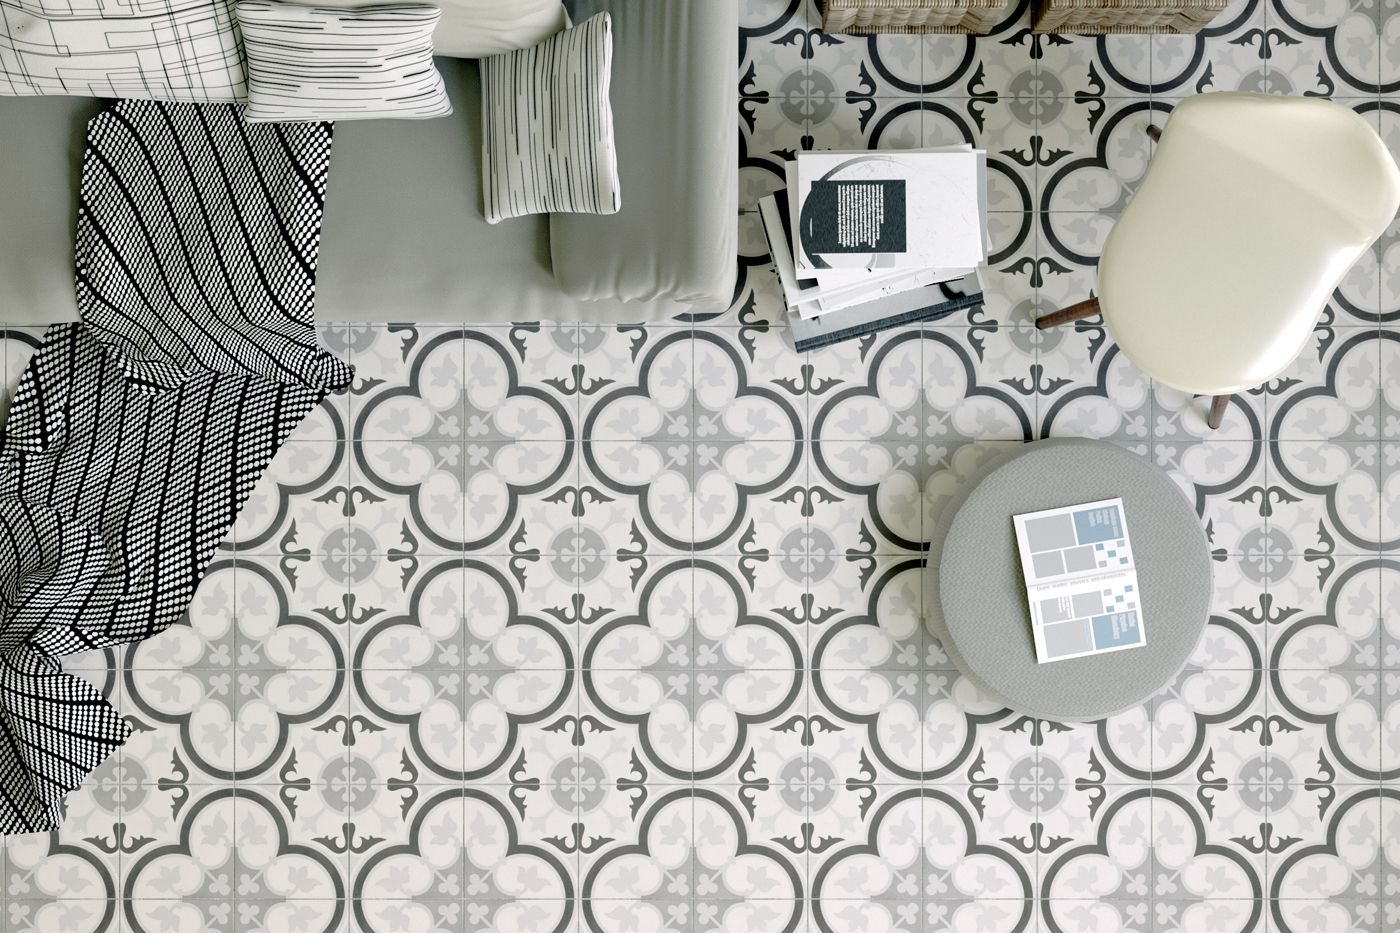 The Marrakech Tile Range Is A Square Porcelain Decor Tile With A Matt Finish And Frost Proof Glaze The Marrakech N Marrakesh Tile Tiles Porcelain Floor Tiles